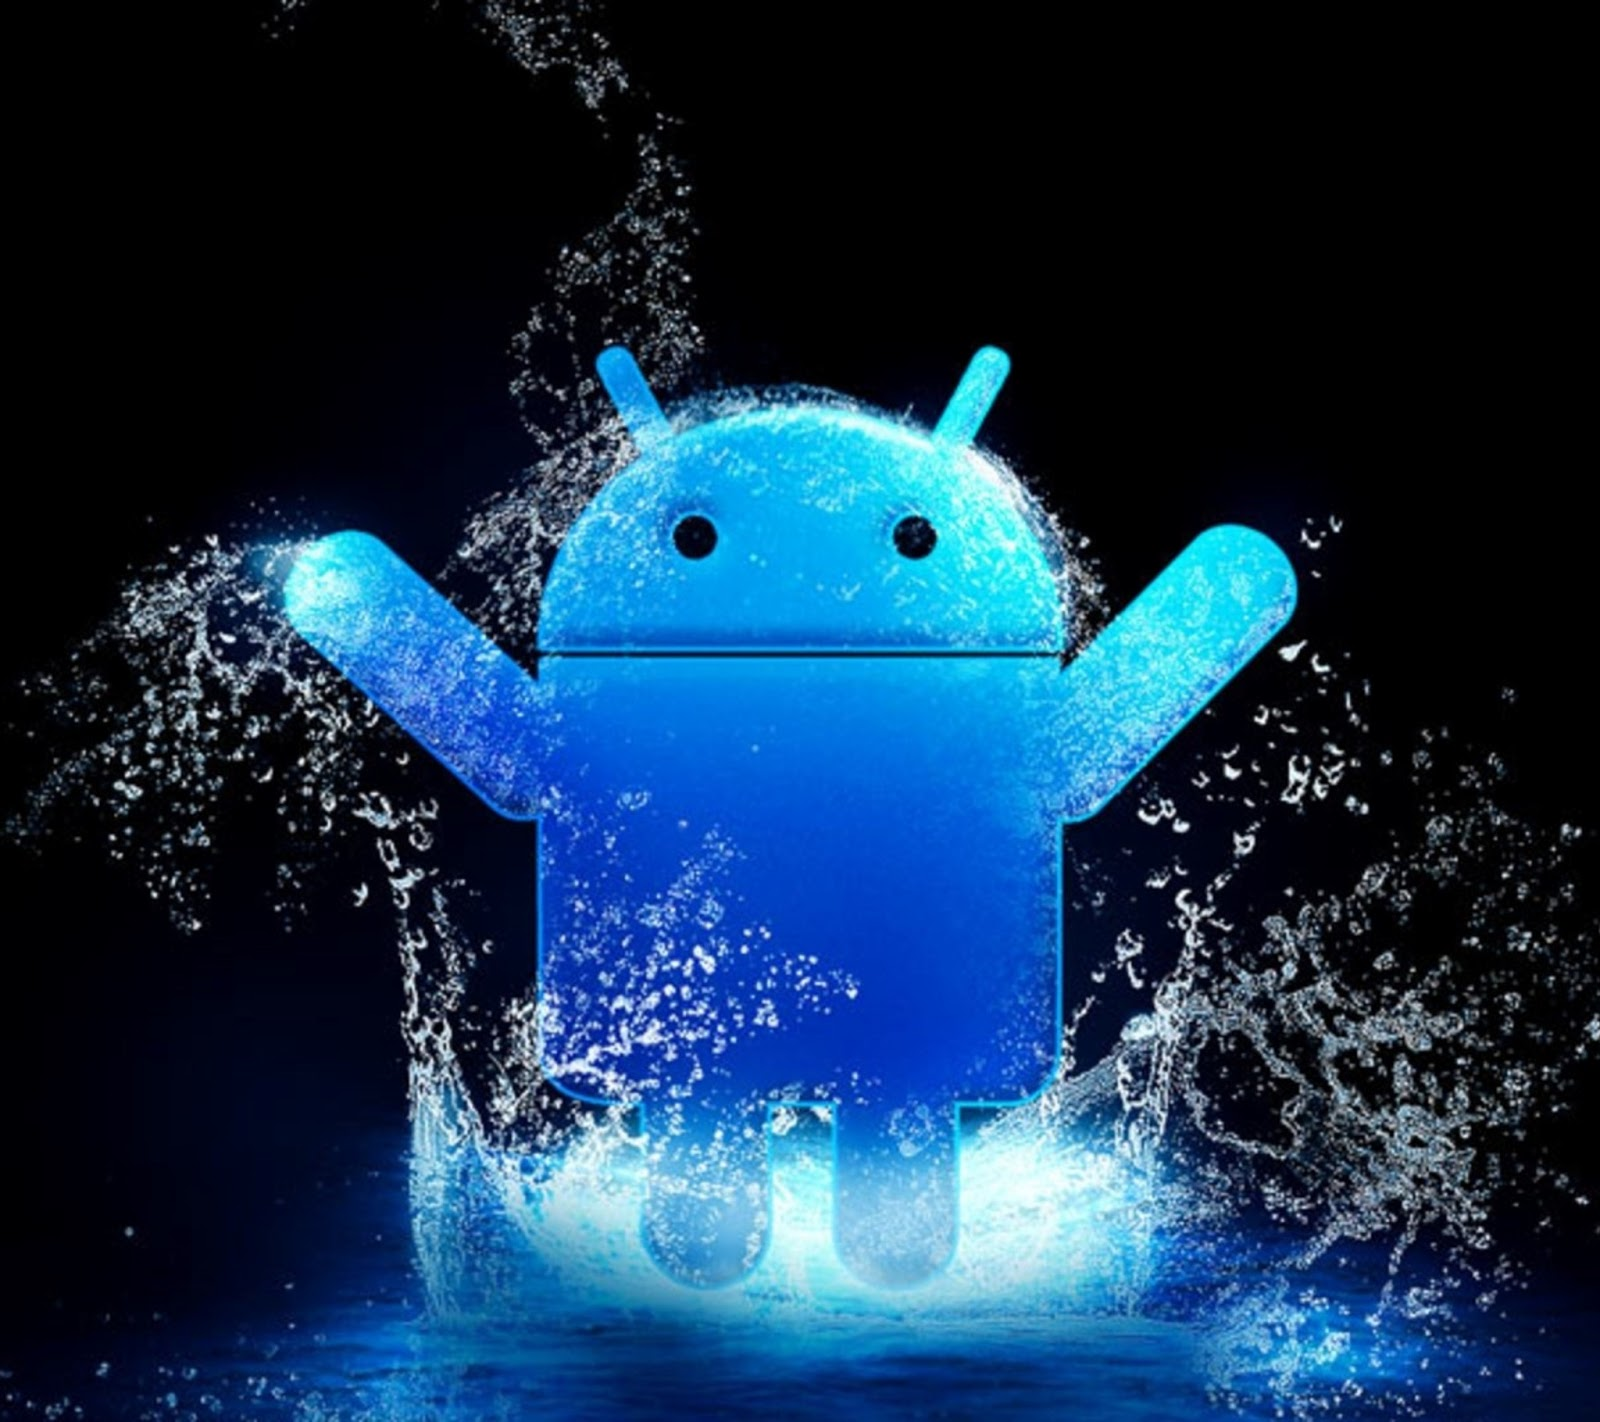 Android HD Wallpapers For Mobile